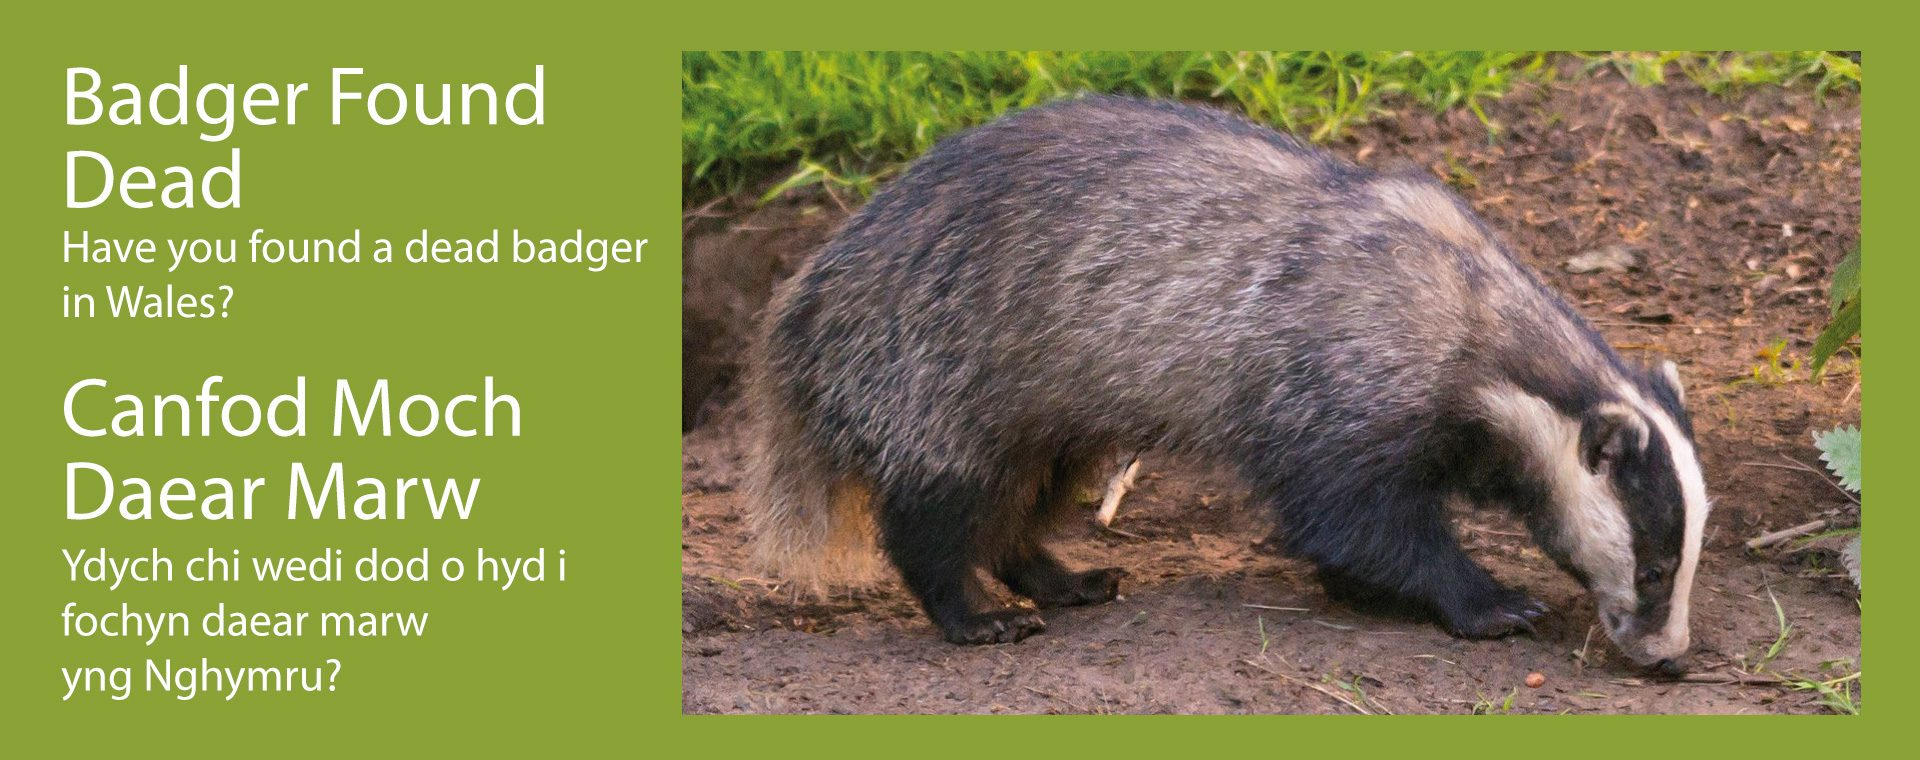 Badger found dead banner